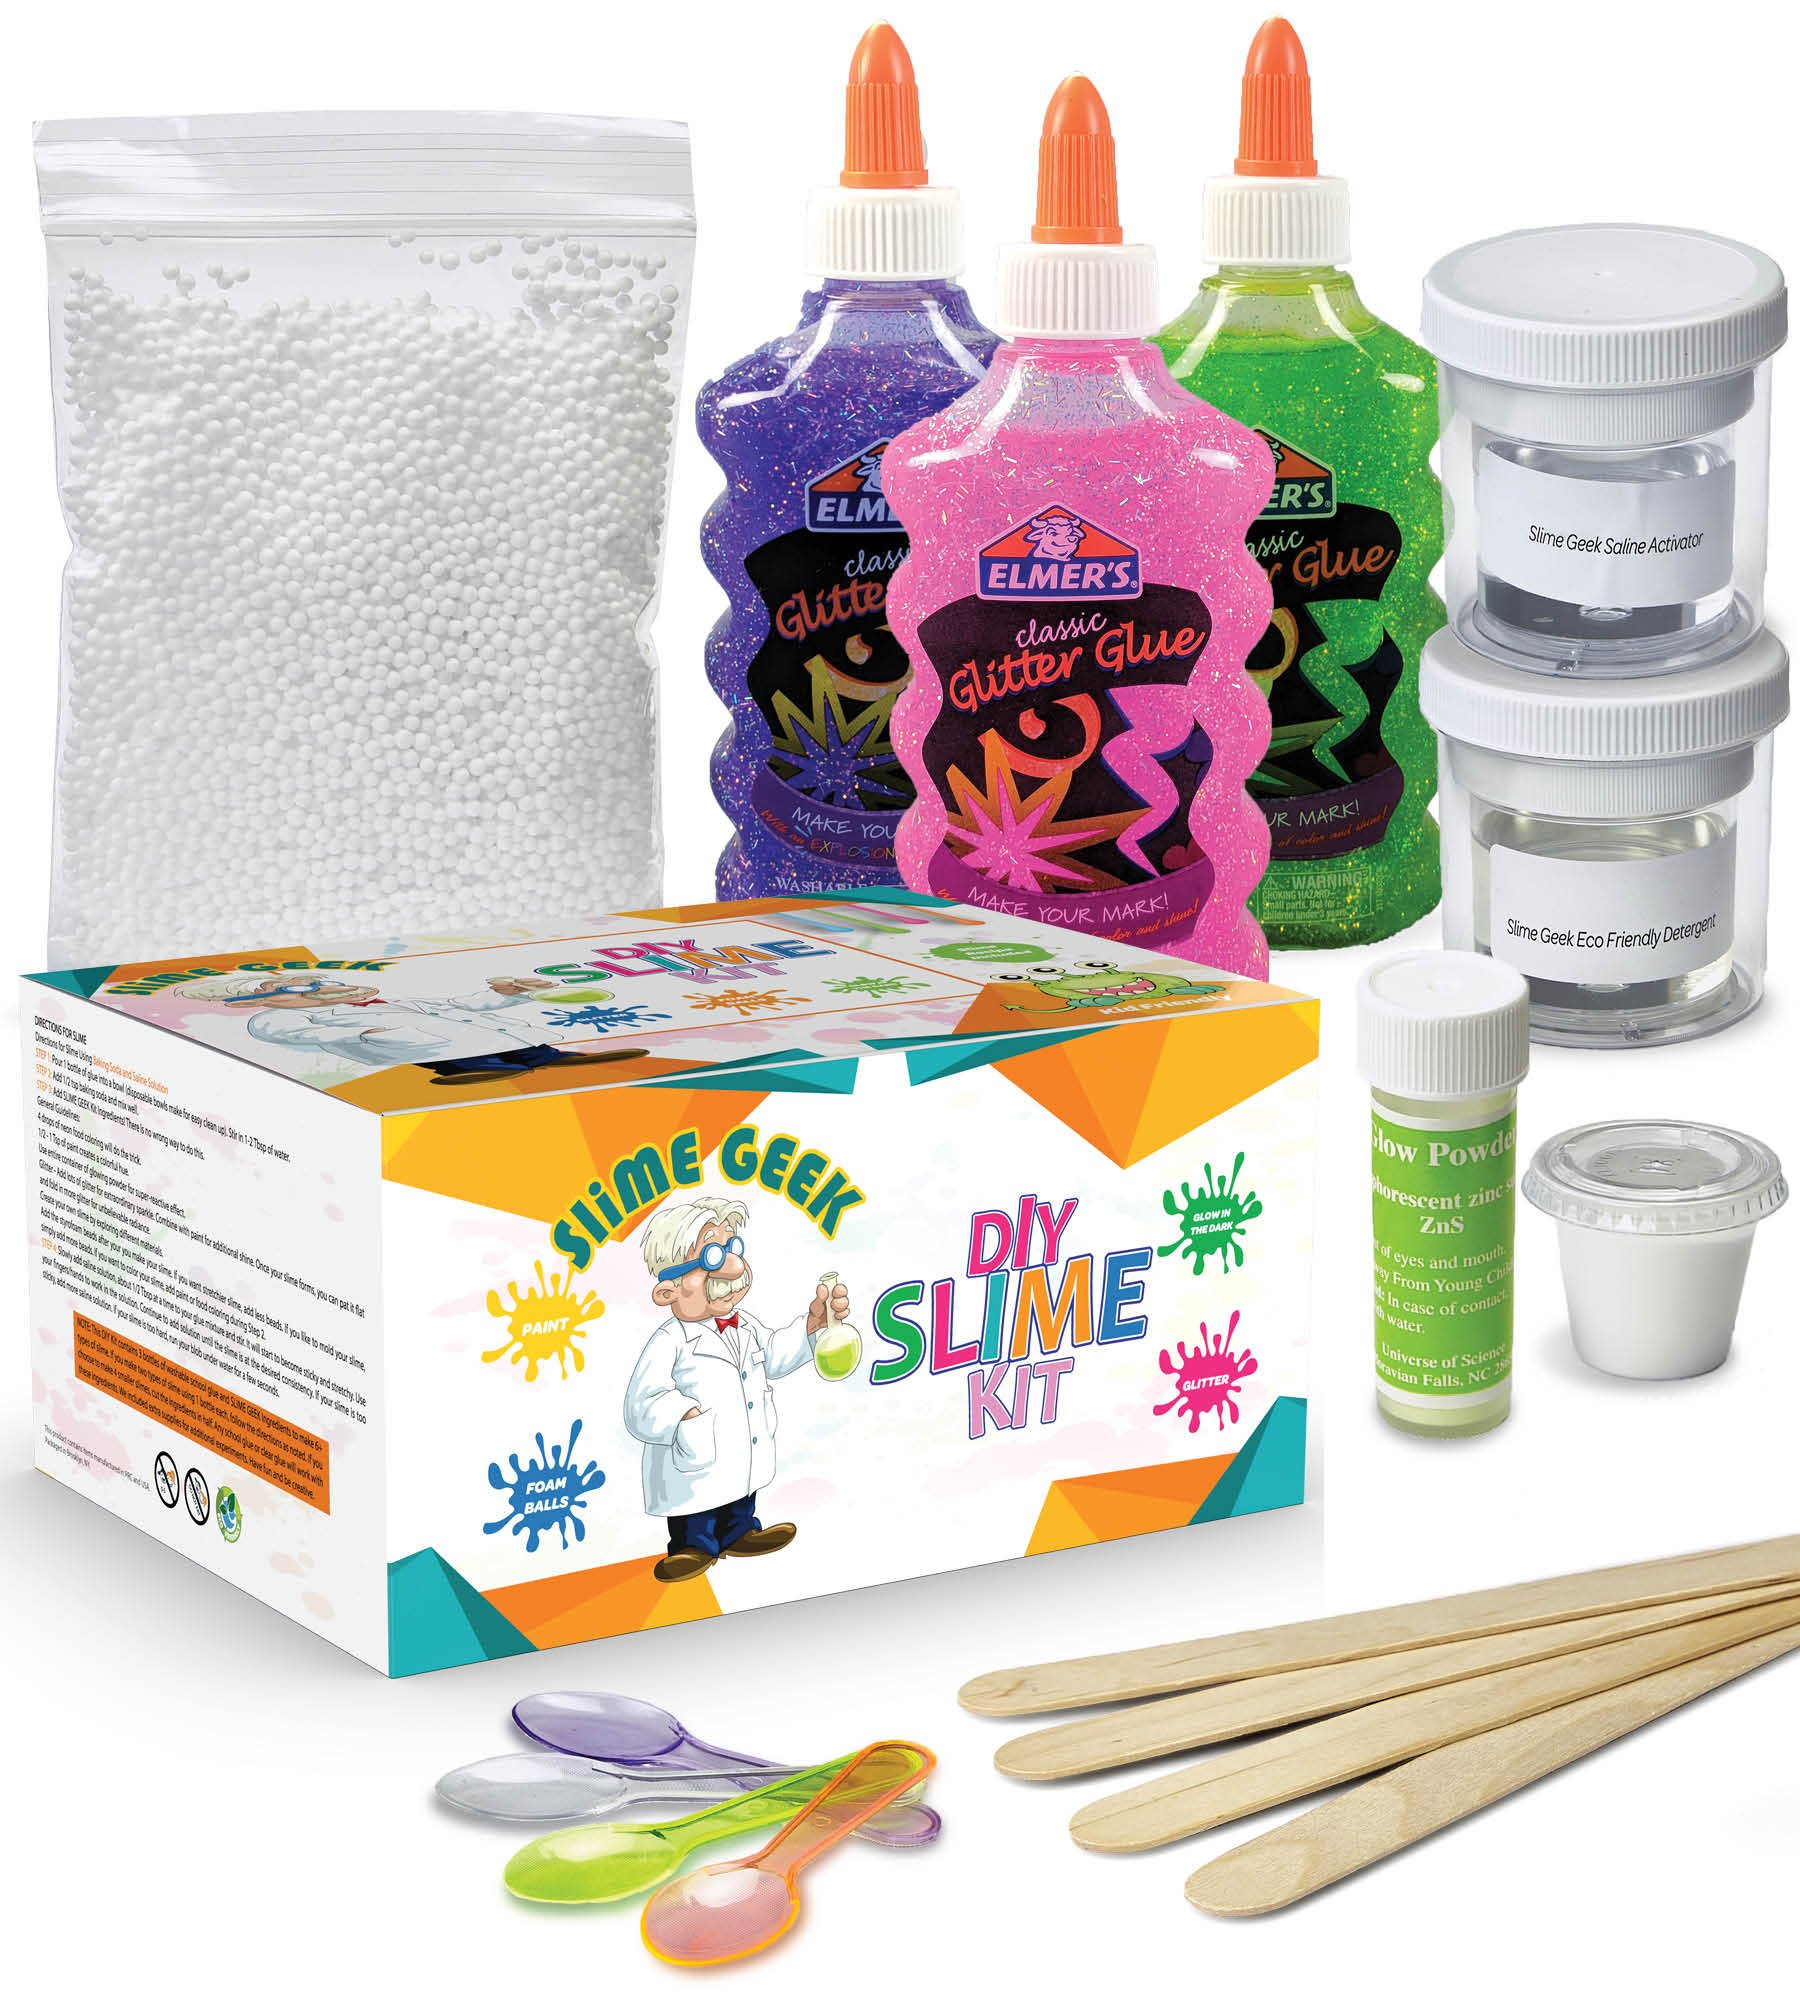 Slime Geek DIY Ultimate Slime Kit -How to make slime , Make Glow-In-The Dark, Glitter Slime - Comes With Airtight Containers for Slime Storage - Comes with Recipes and Bonus E-Book